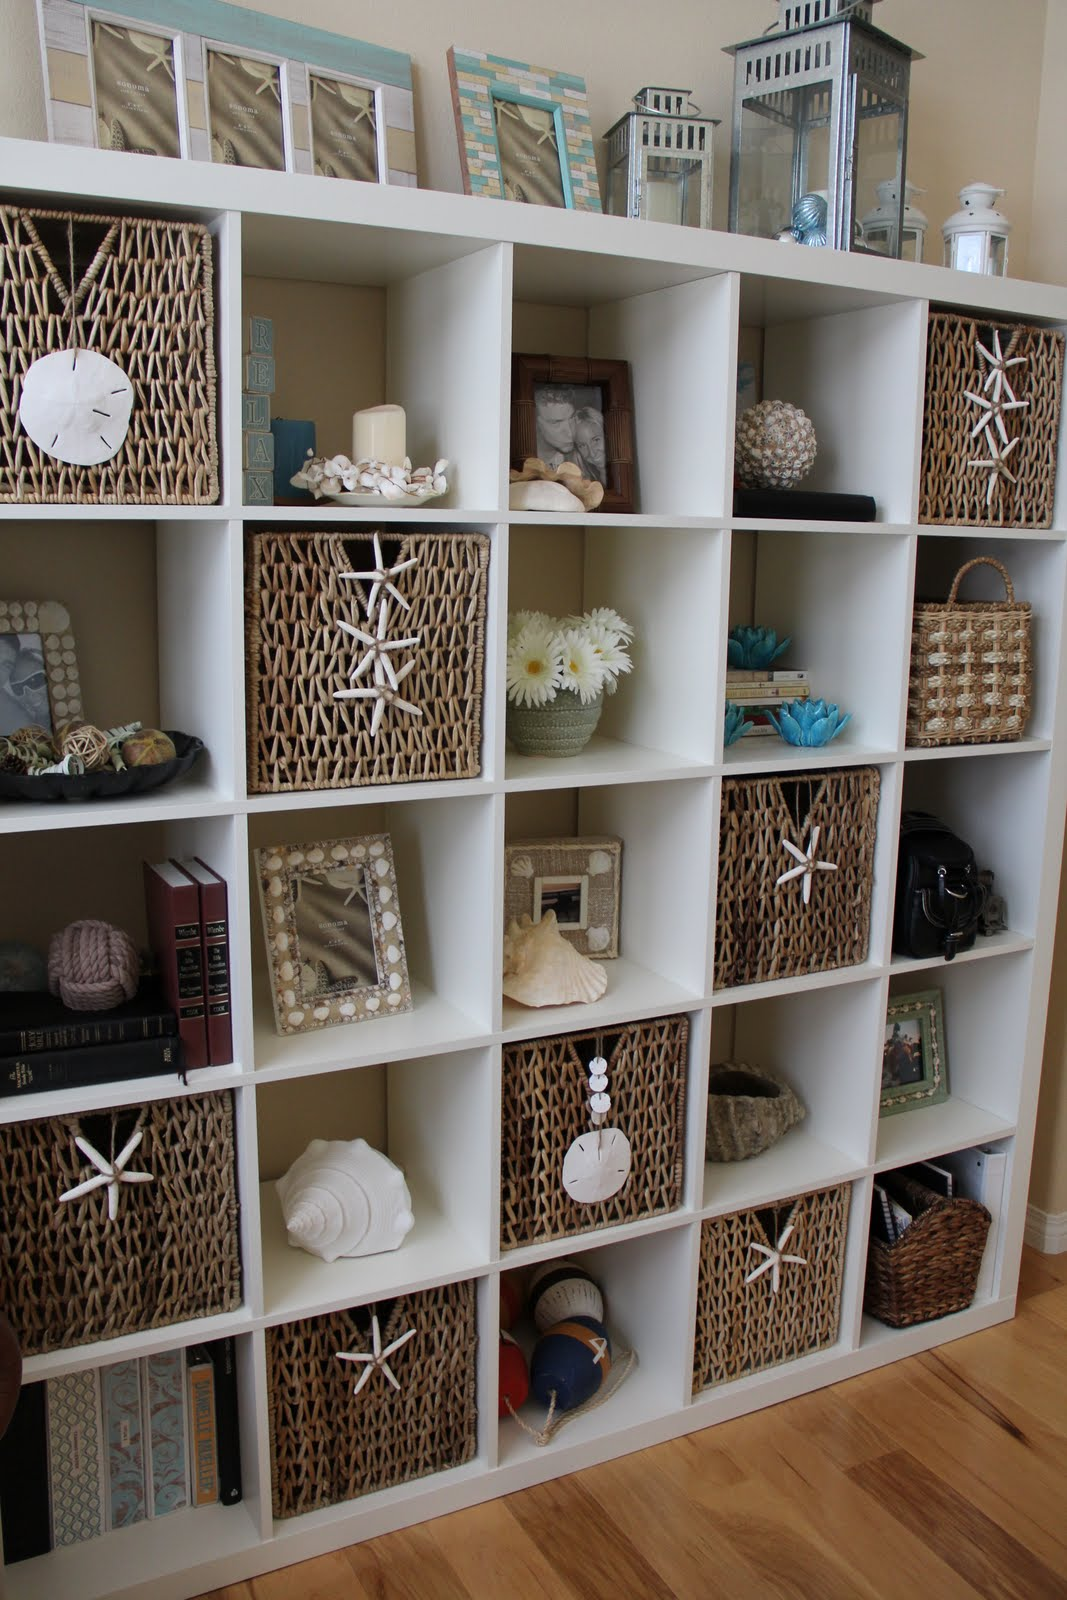 Decorative Items For Living Room: Team Mueller: Daily Tide 7.15 = Decorating With Shells